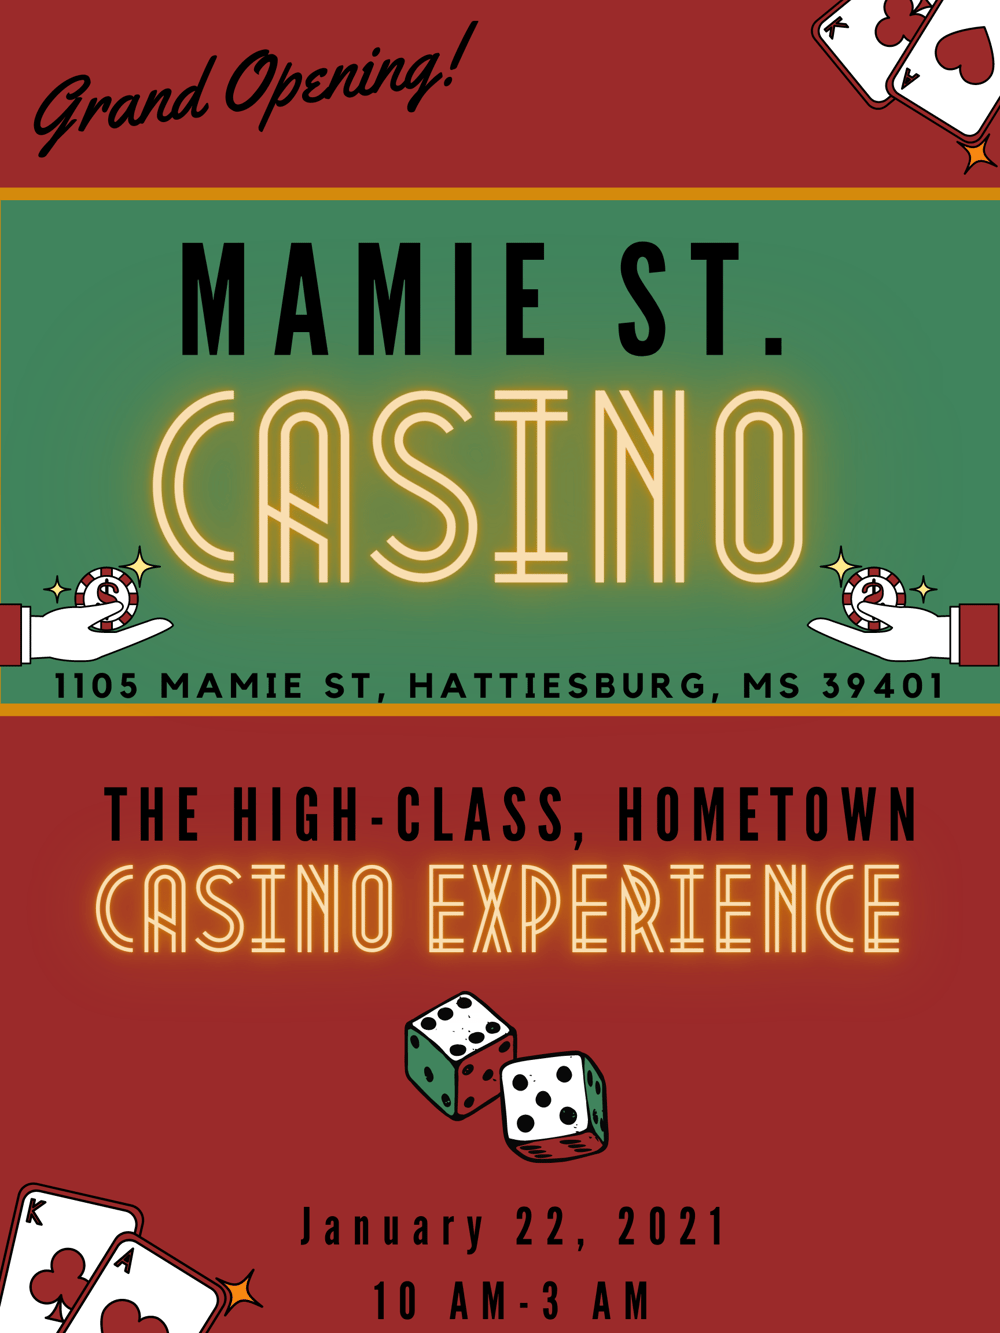 Casino Poster - image 1 - student project